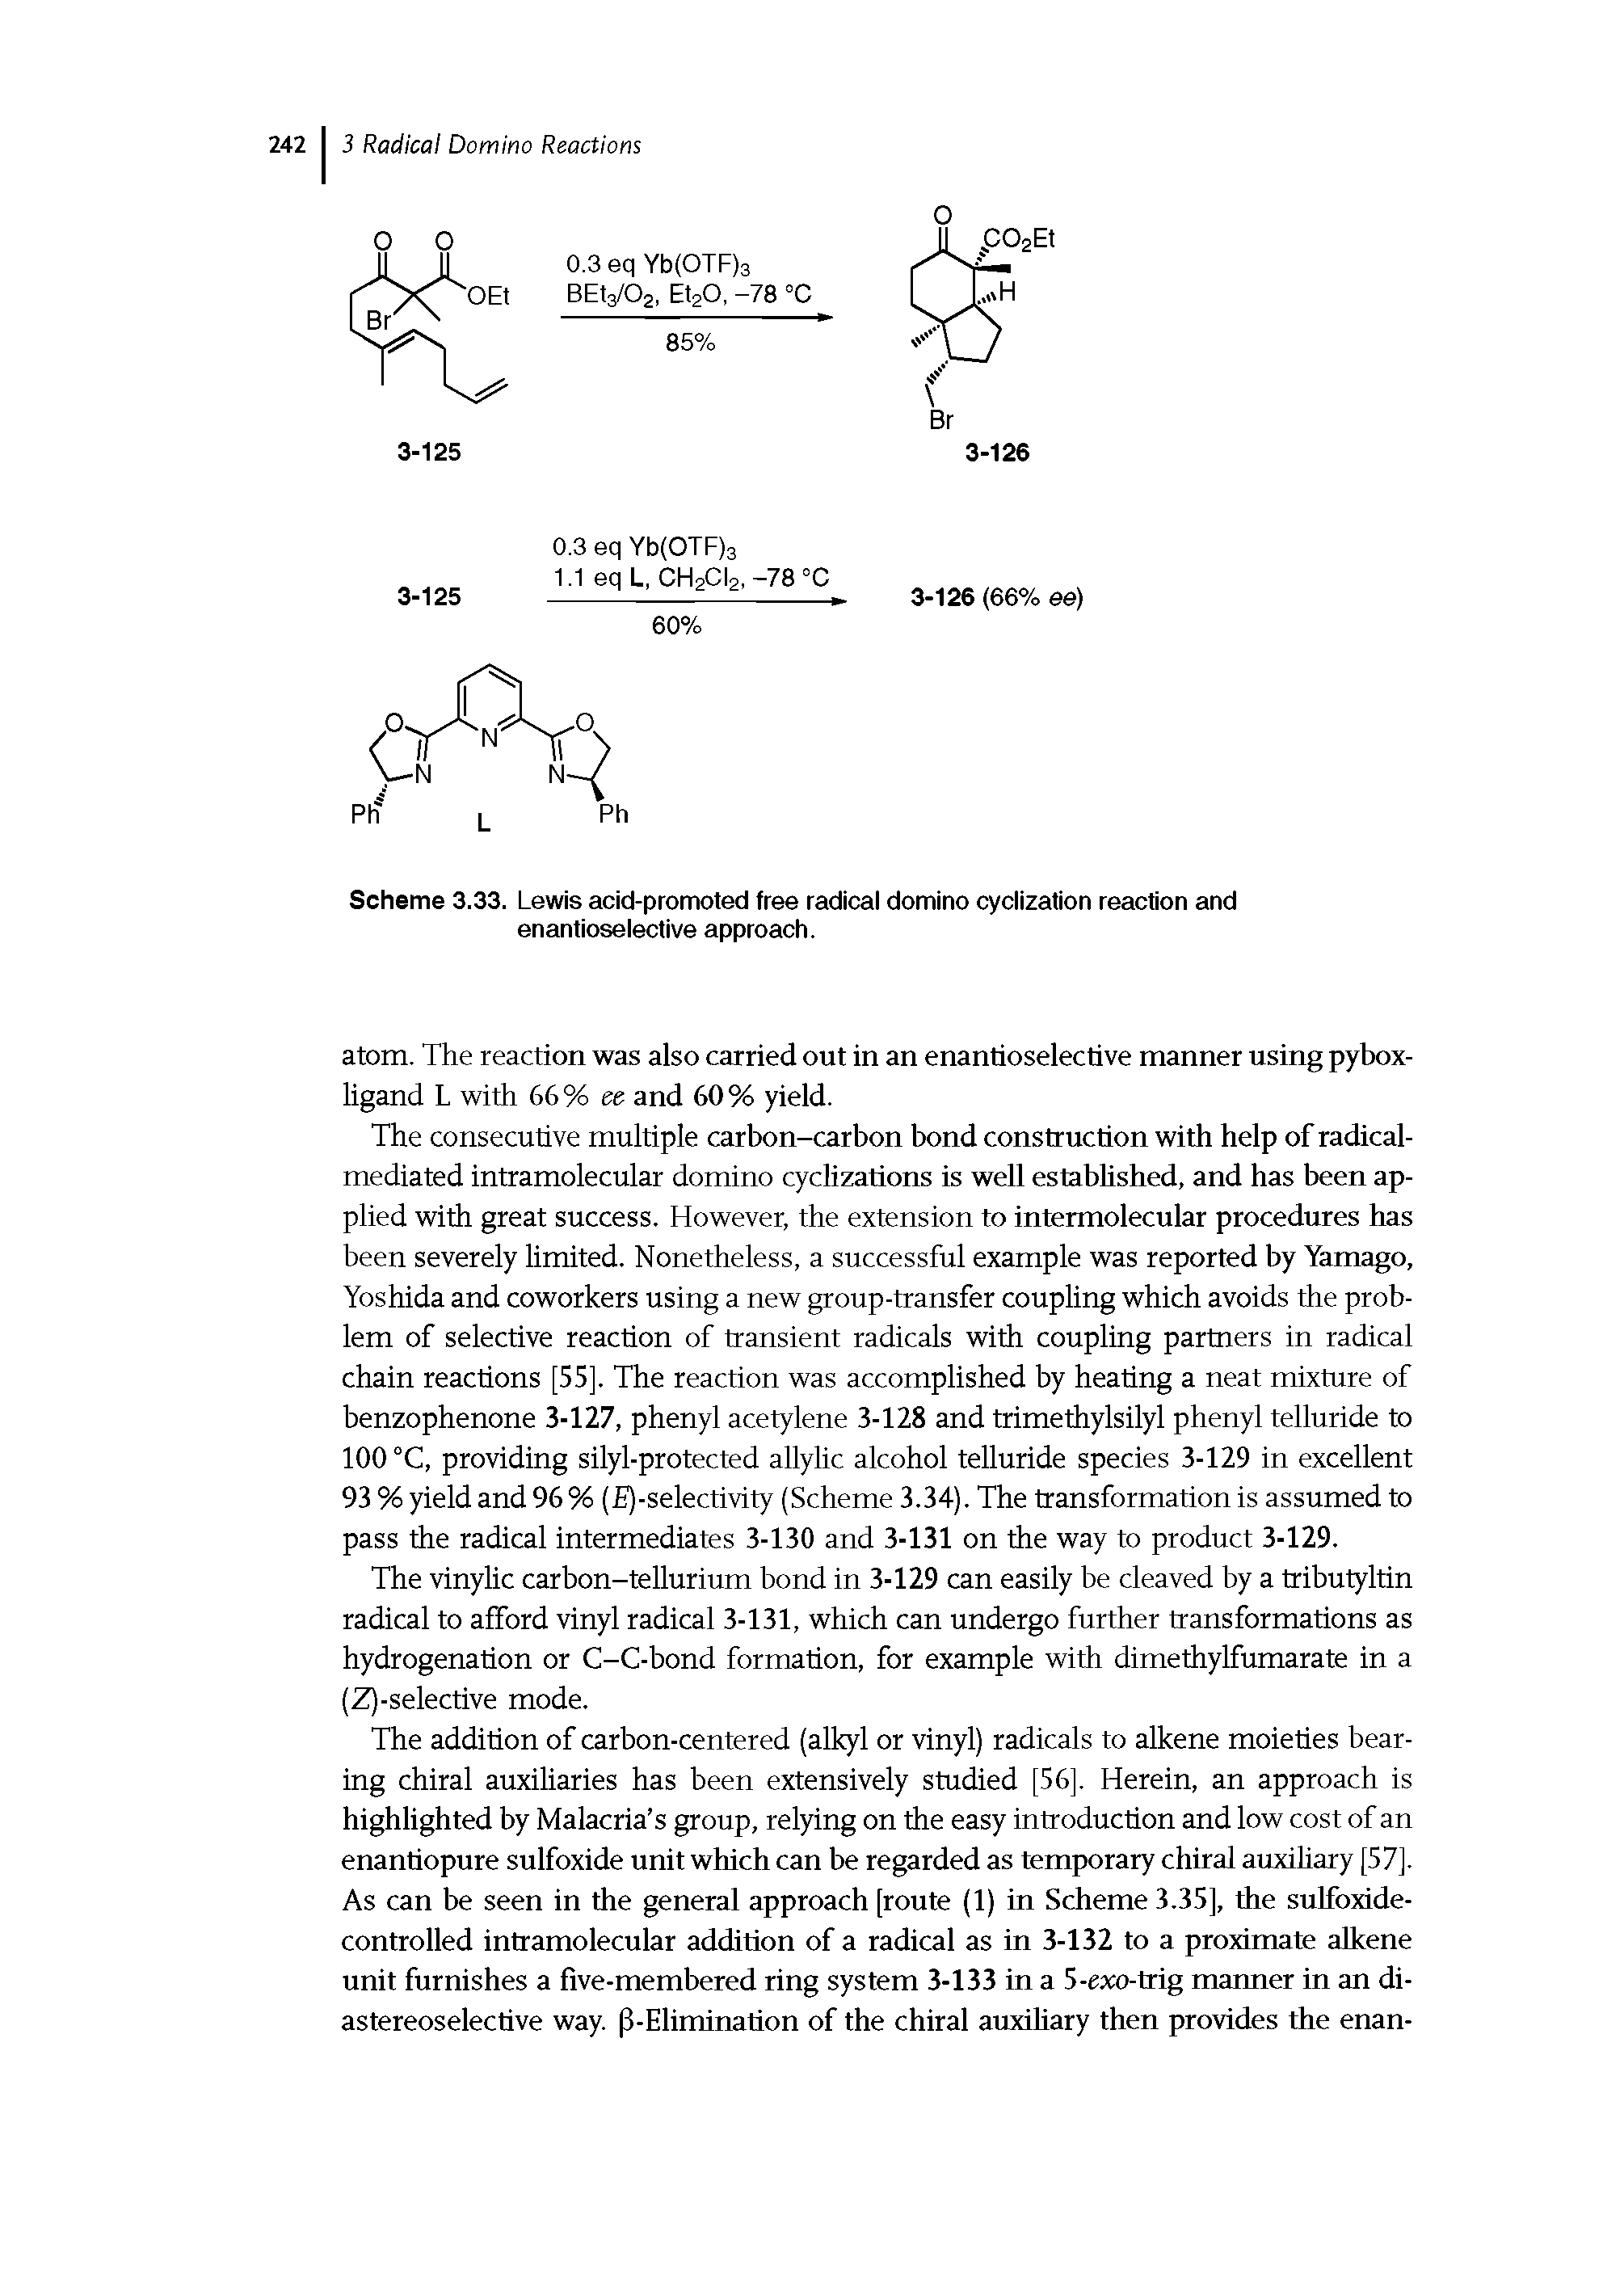 "Scheme 3.33. Lewis acid-promoted <a href=""/info/free_radicals"">free radical</a> <a href=""/info/domino_reactions_cyclizations"">domino cyclization reaction</a> and enantioselective approach."